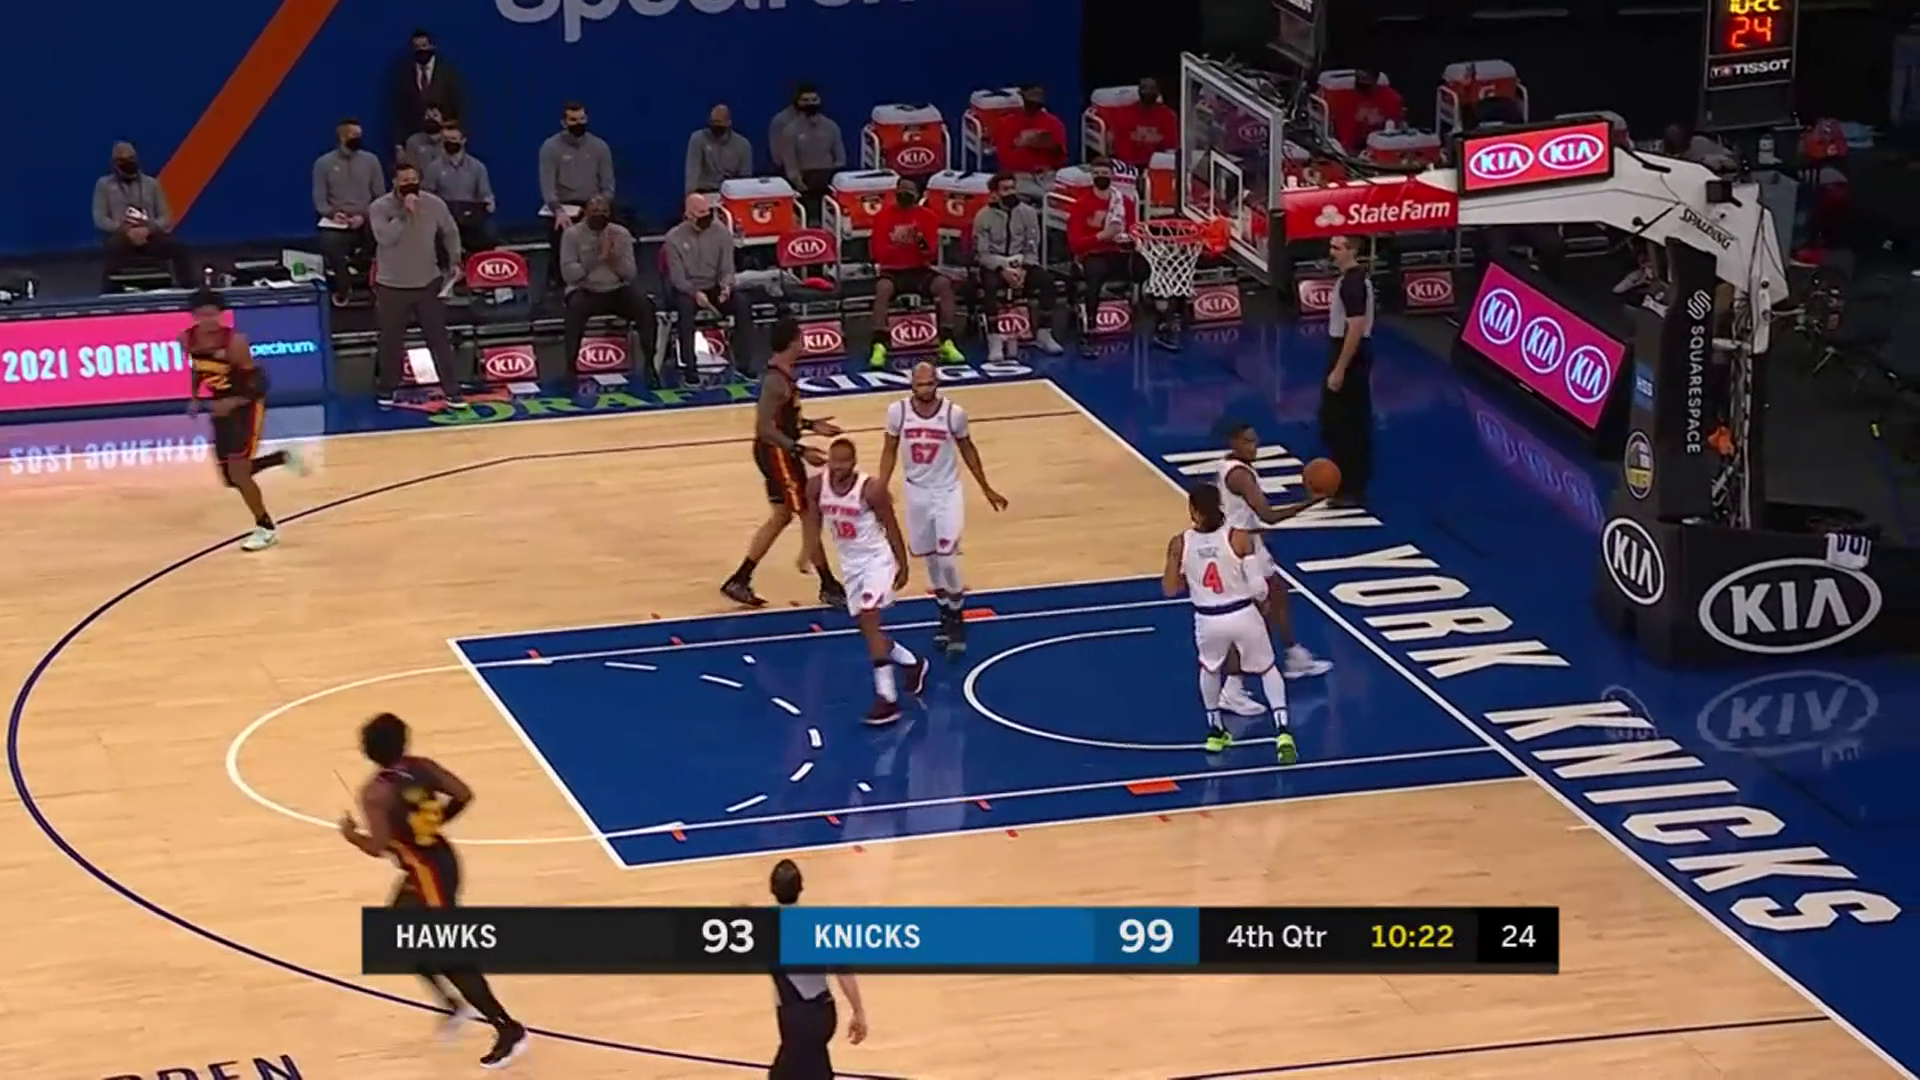 Gallinari Comes Off The Bench For 16 Points vs. Knicks